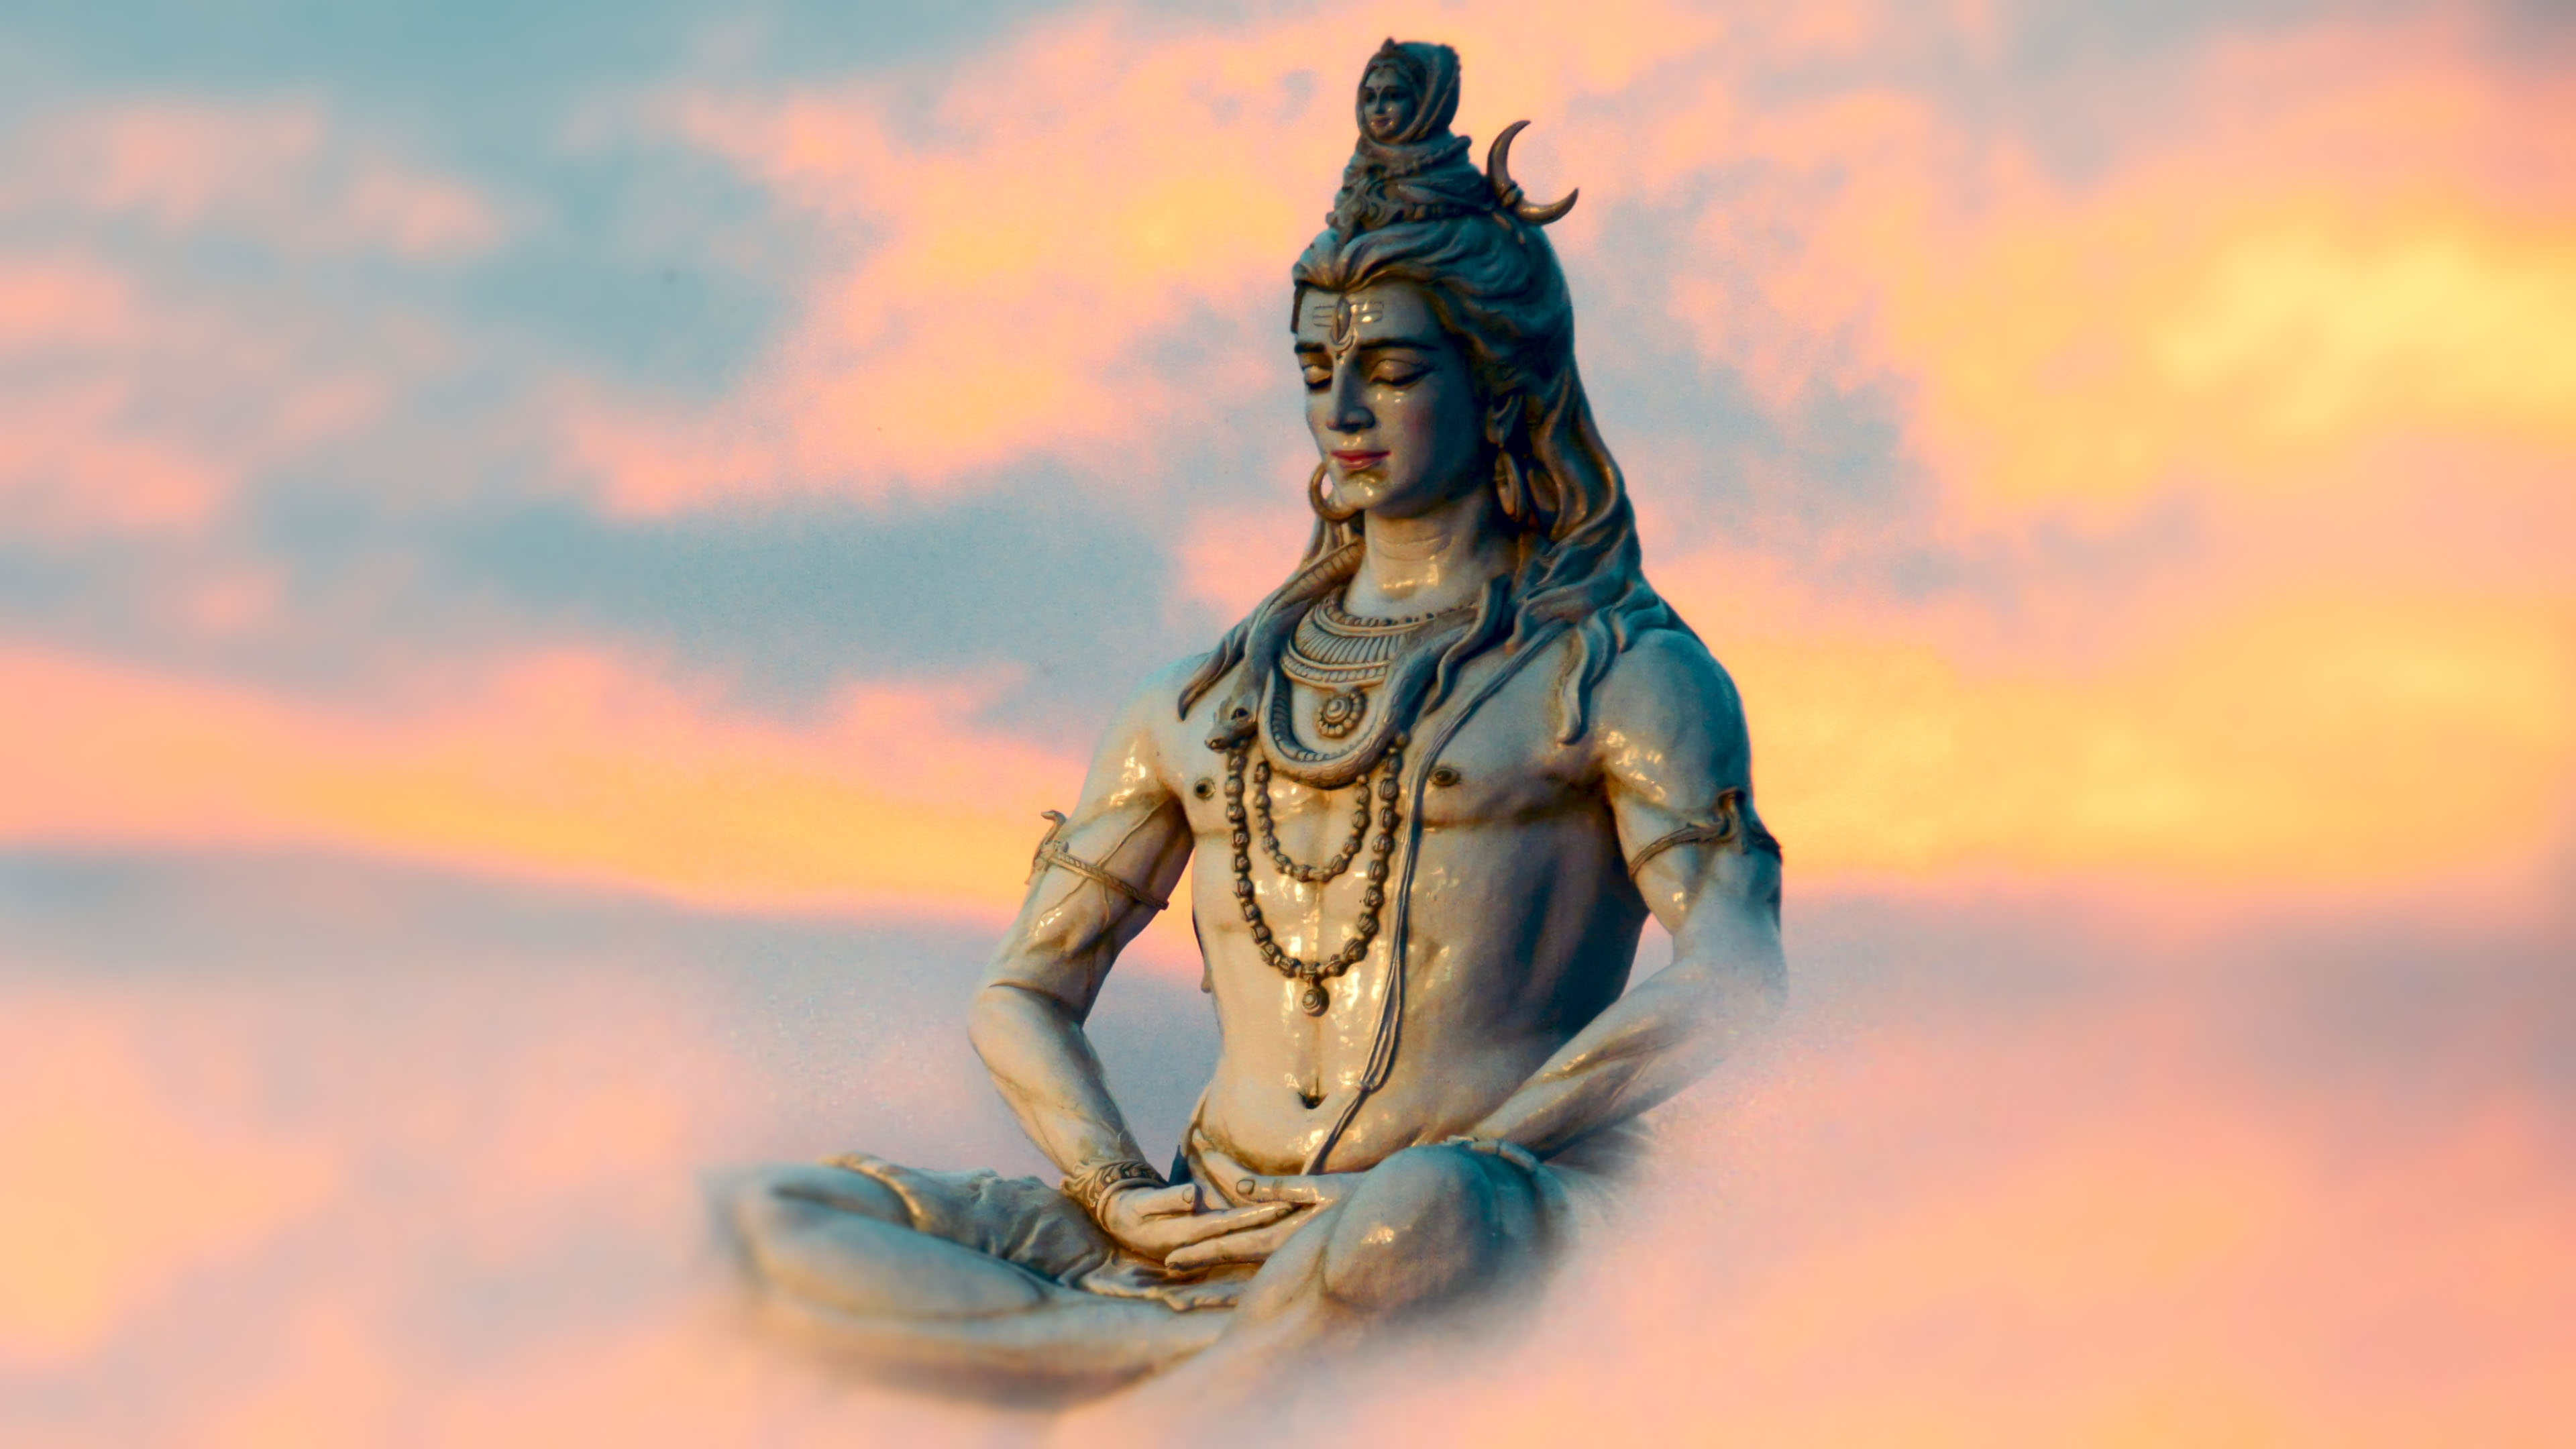 Lord Shiva Hd Wallpapers Wordzz